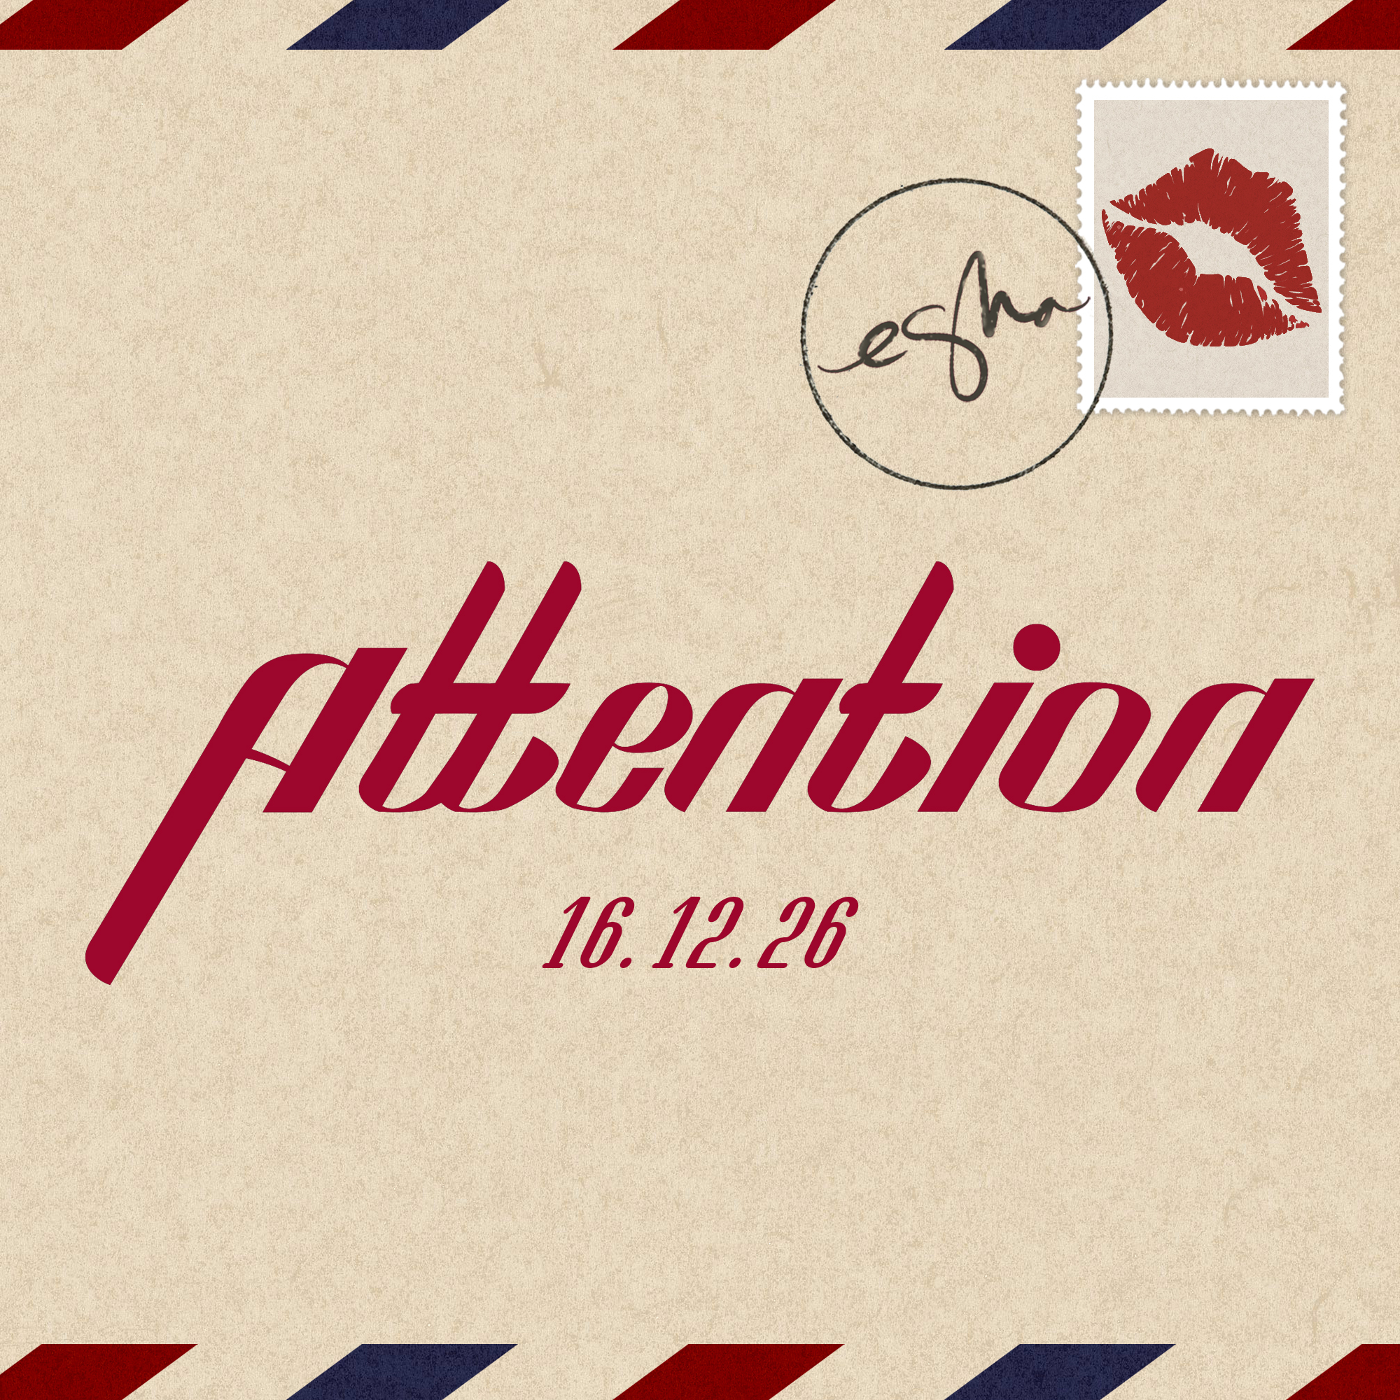 Attention (eSNa)